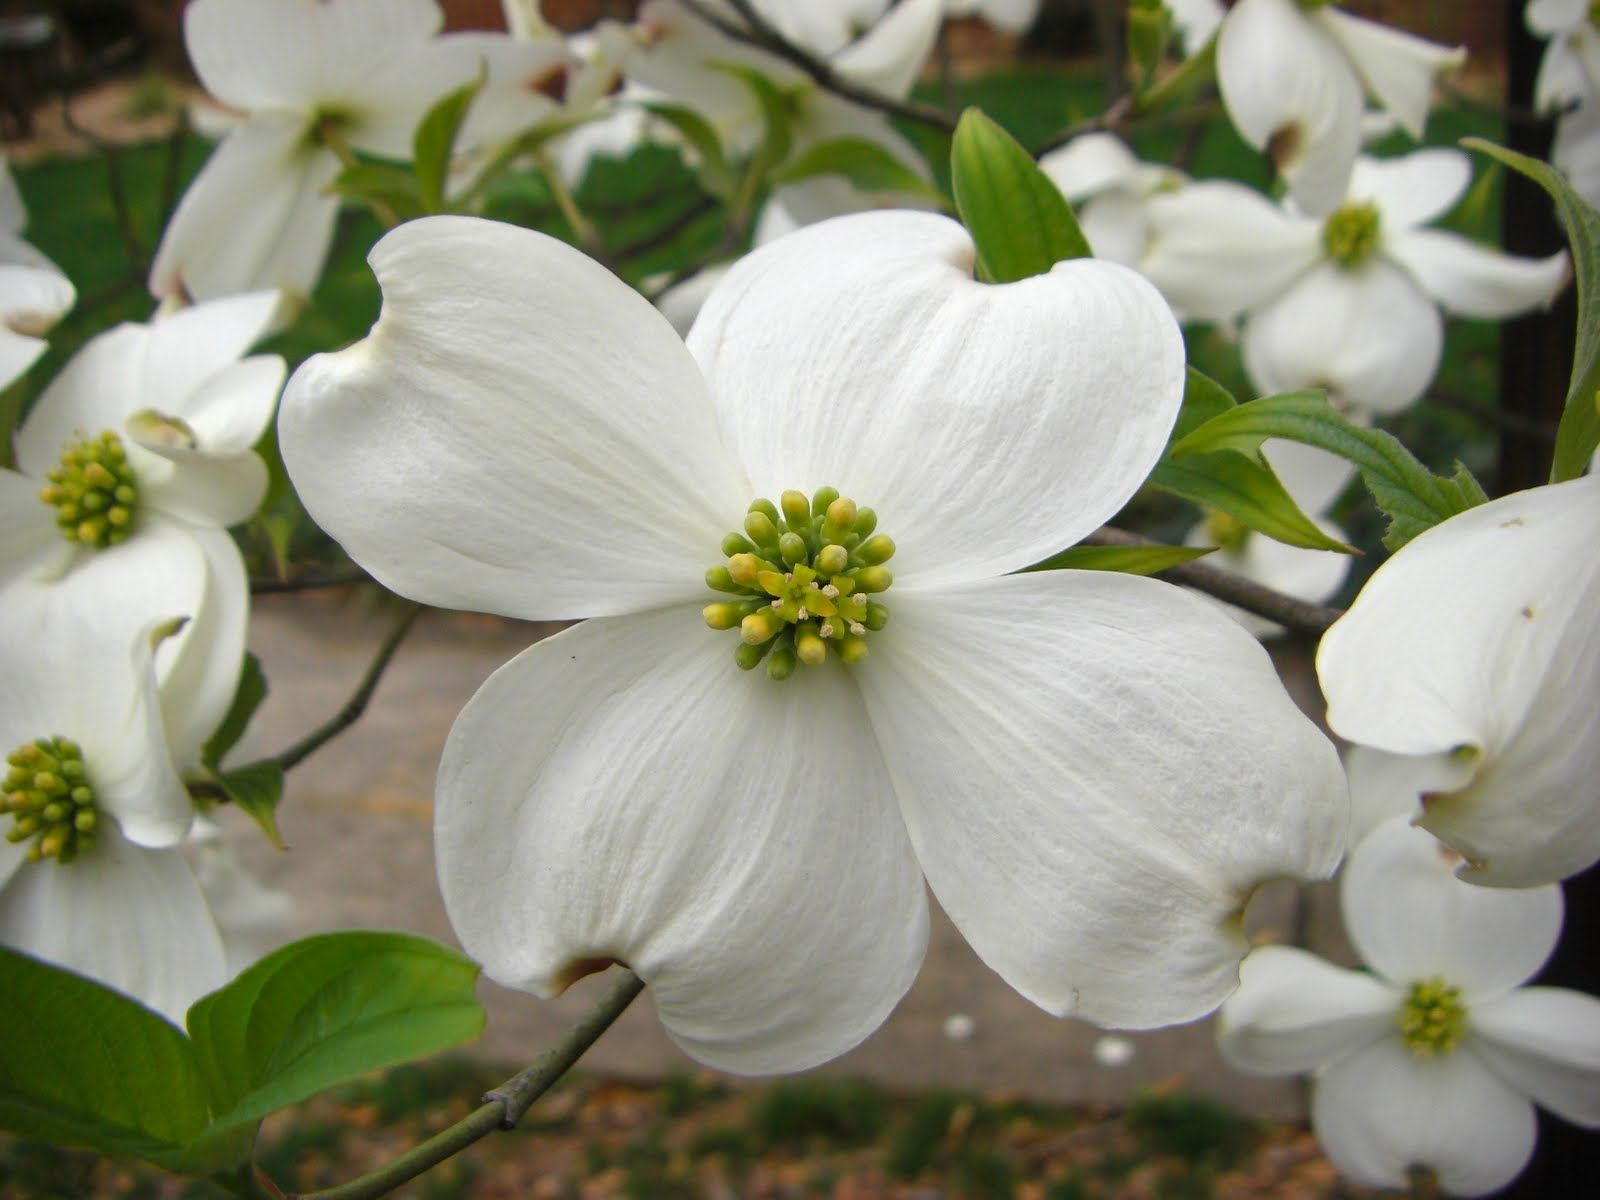 The Dogwood Tree Another Legend For Good Friday Dogwood Trees Dogwood Dogwood Blossoms